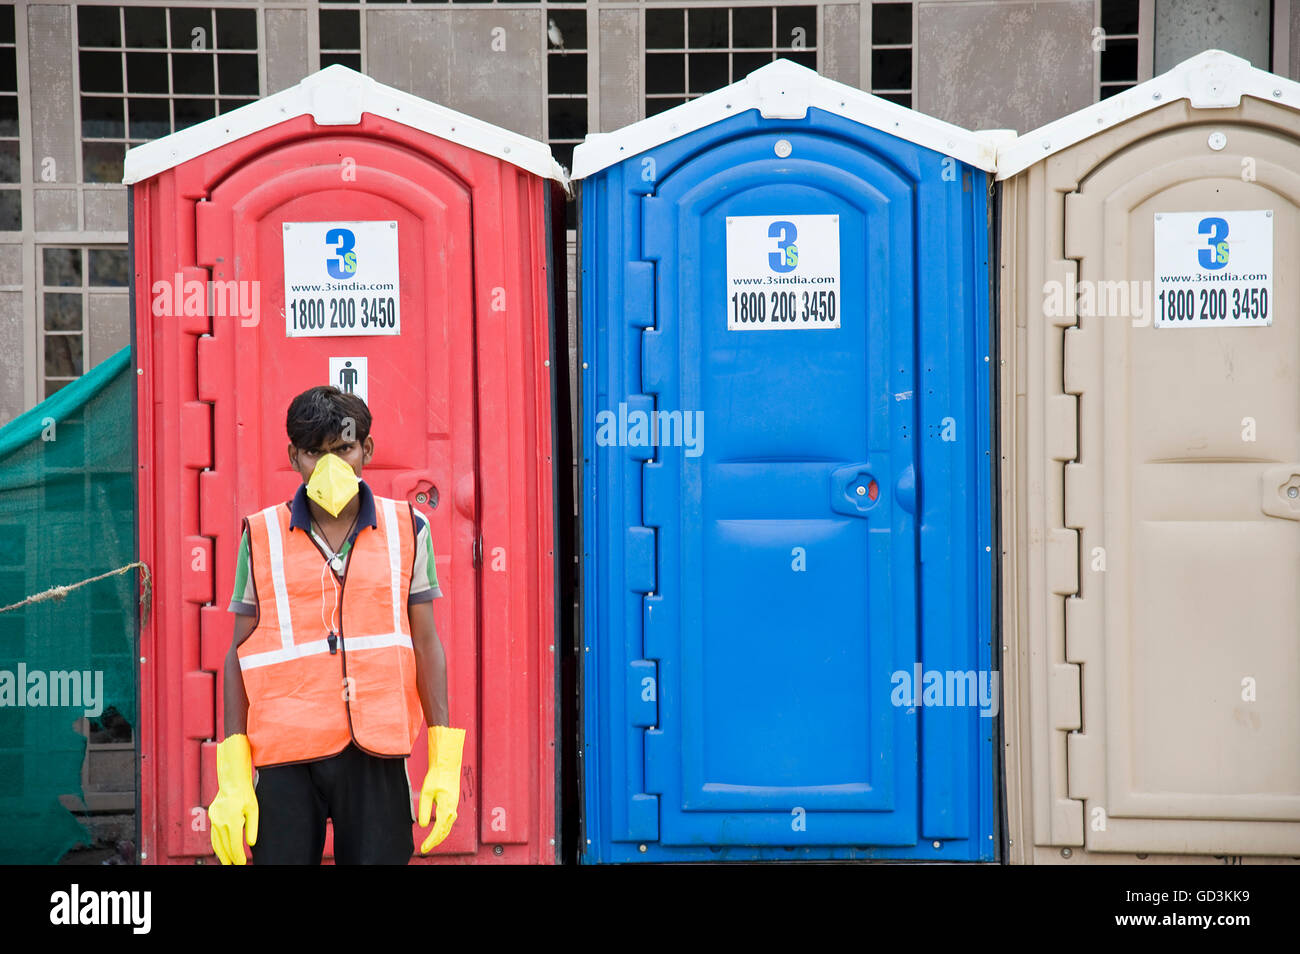 Temporary portable toilets, Nasik, maharashtra, india, asia - Stock Image